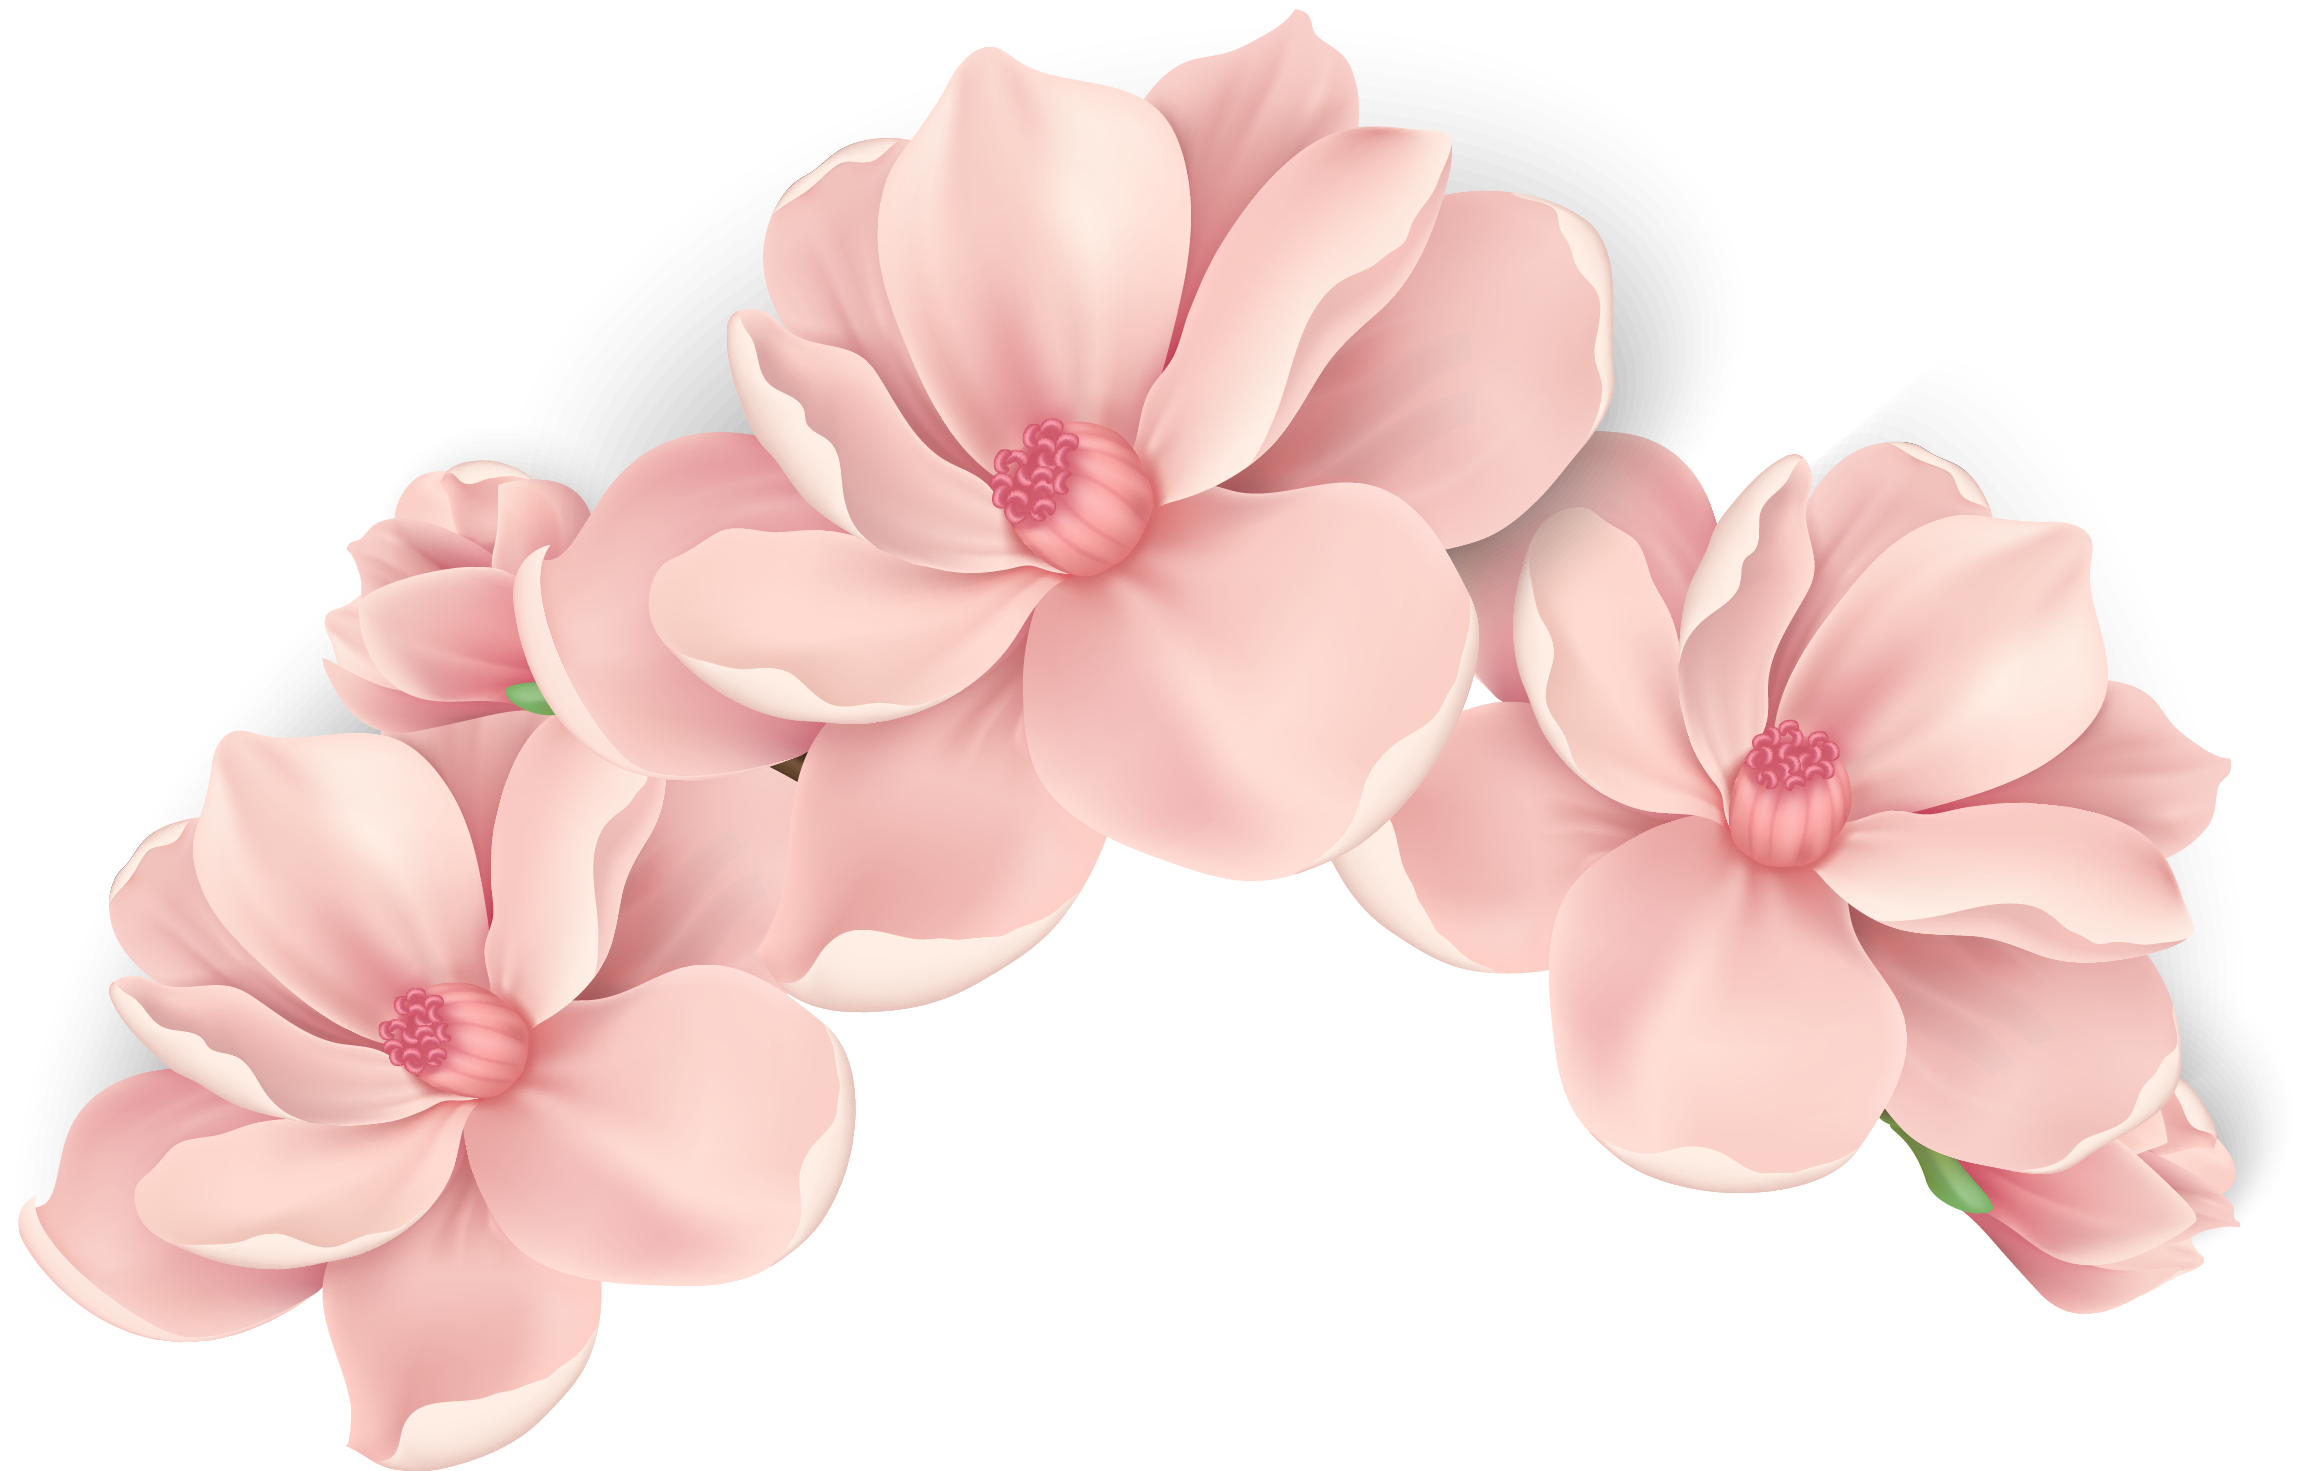 Pink flower vector png. Flowers hand painted transprent